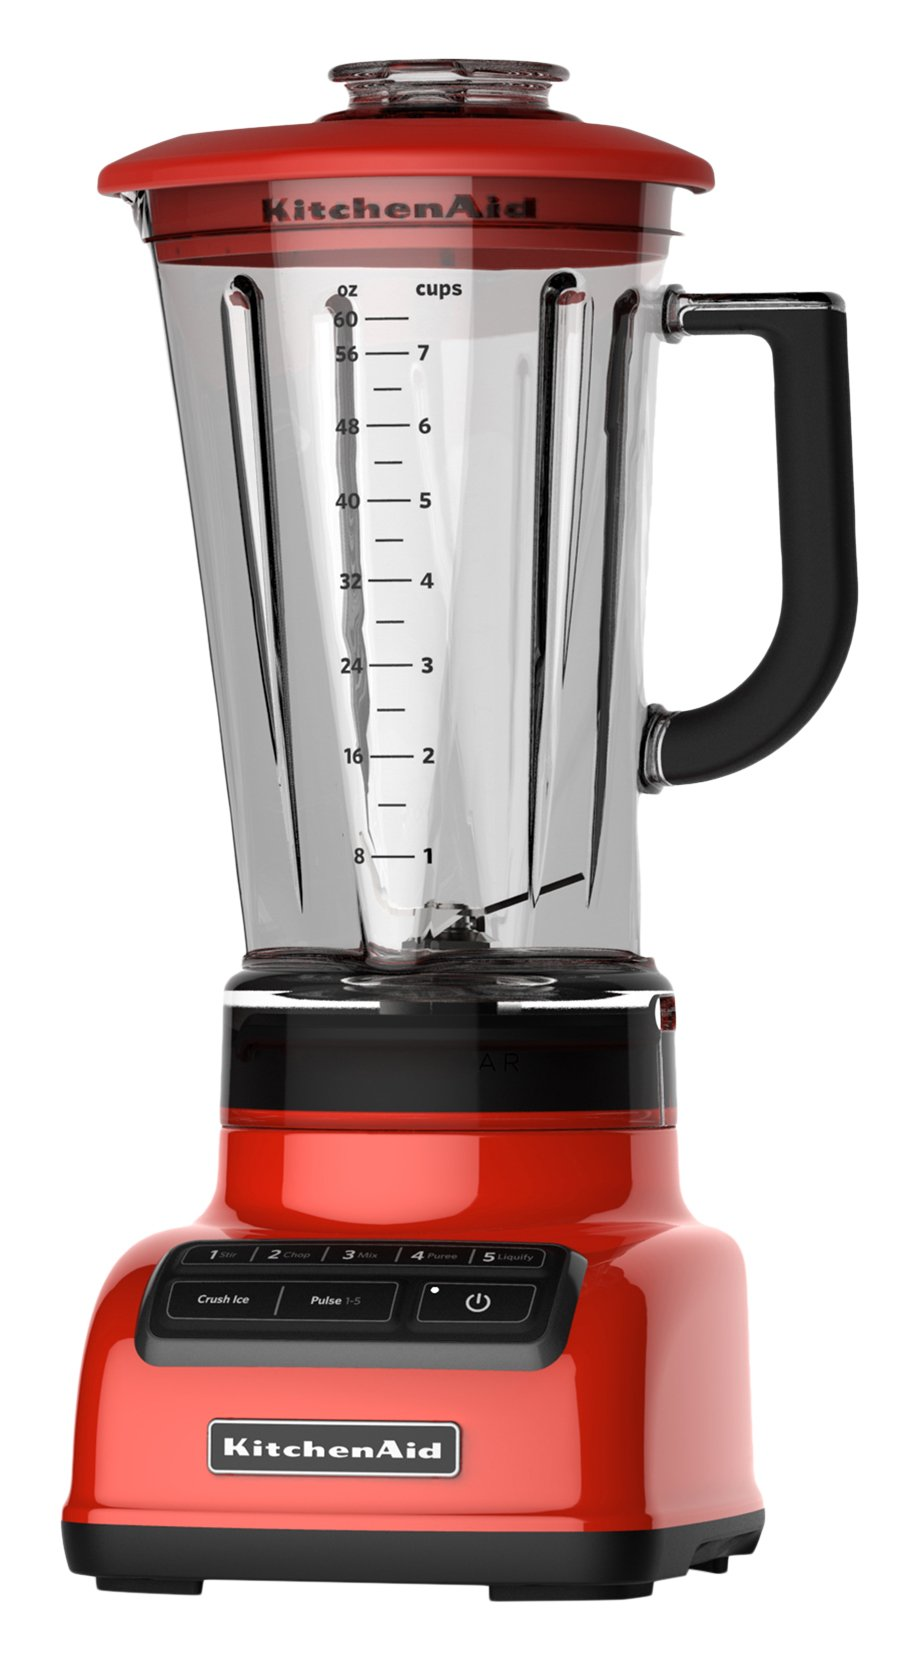 KitchenAid KSB1575HT 5-Speed Diamond Blender with BPA-Free Pitcher, 60 oz, Hot Sauce